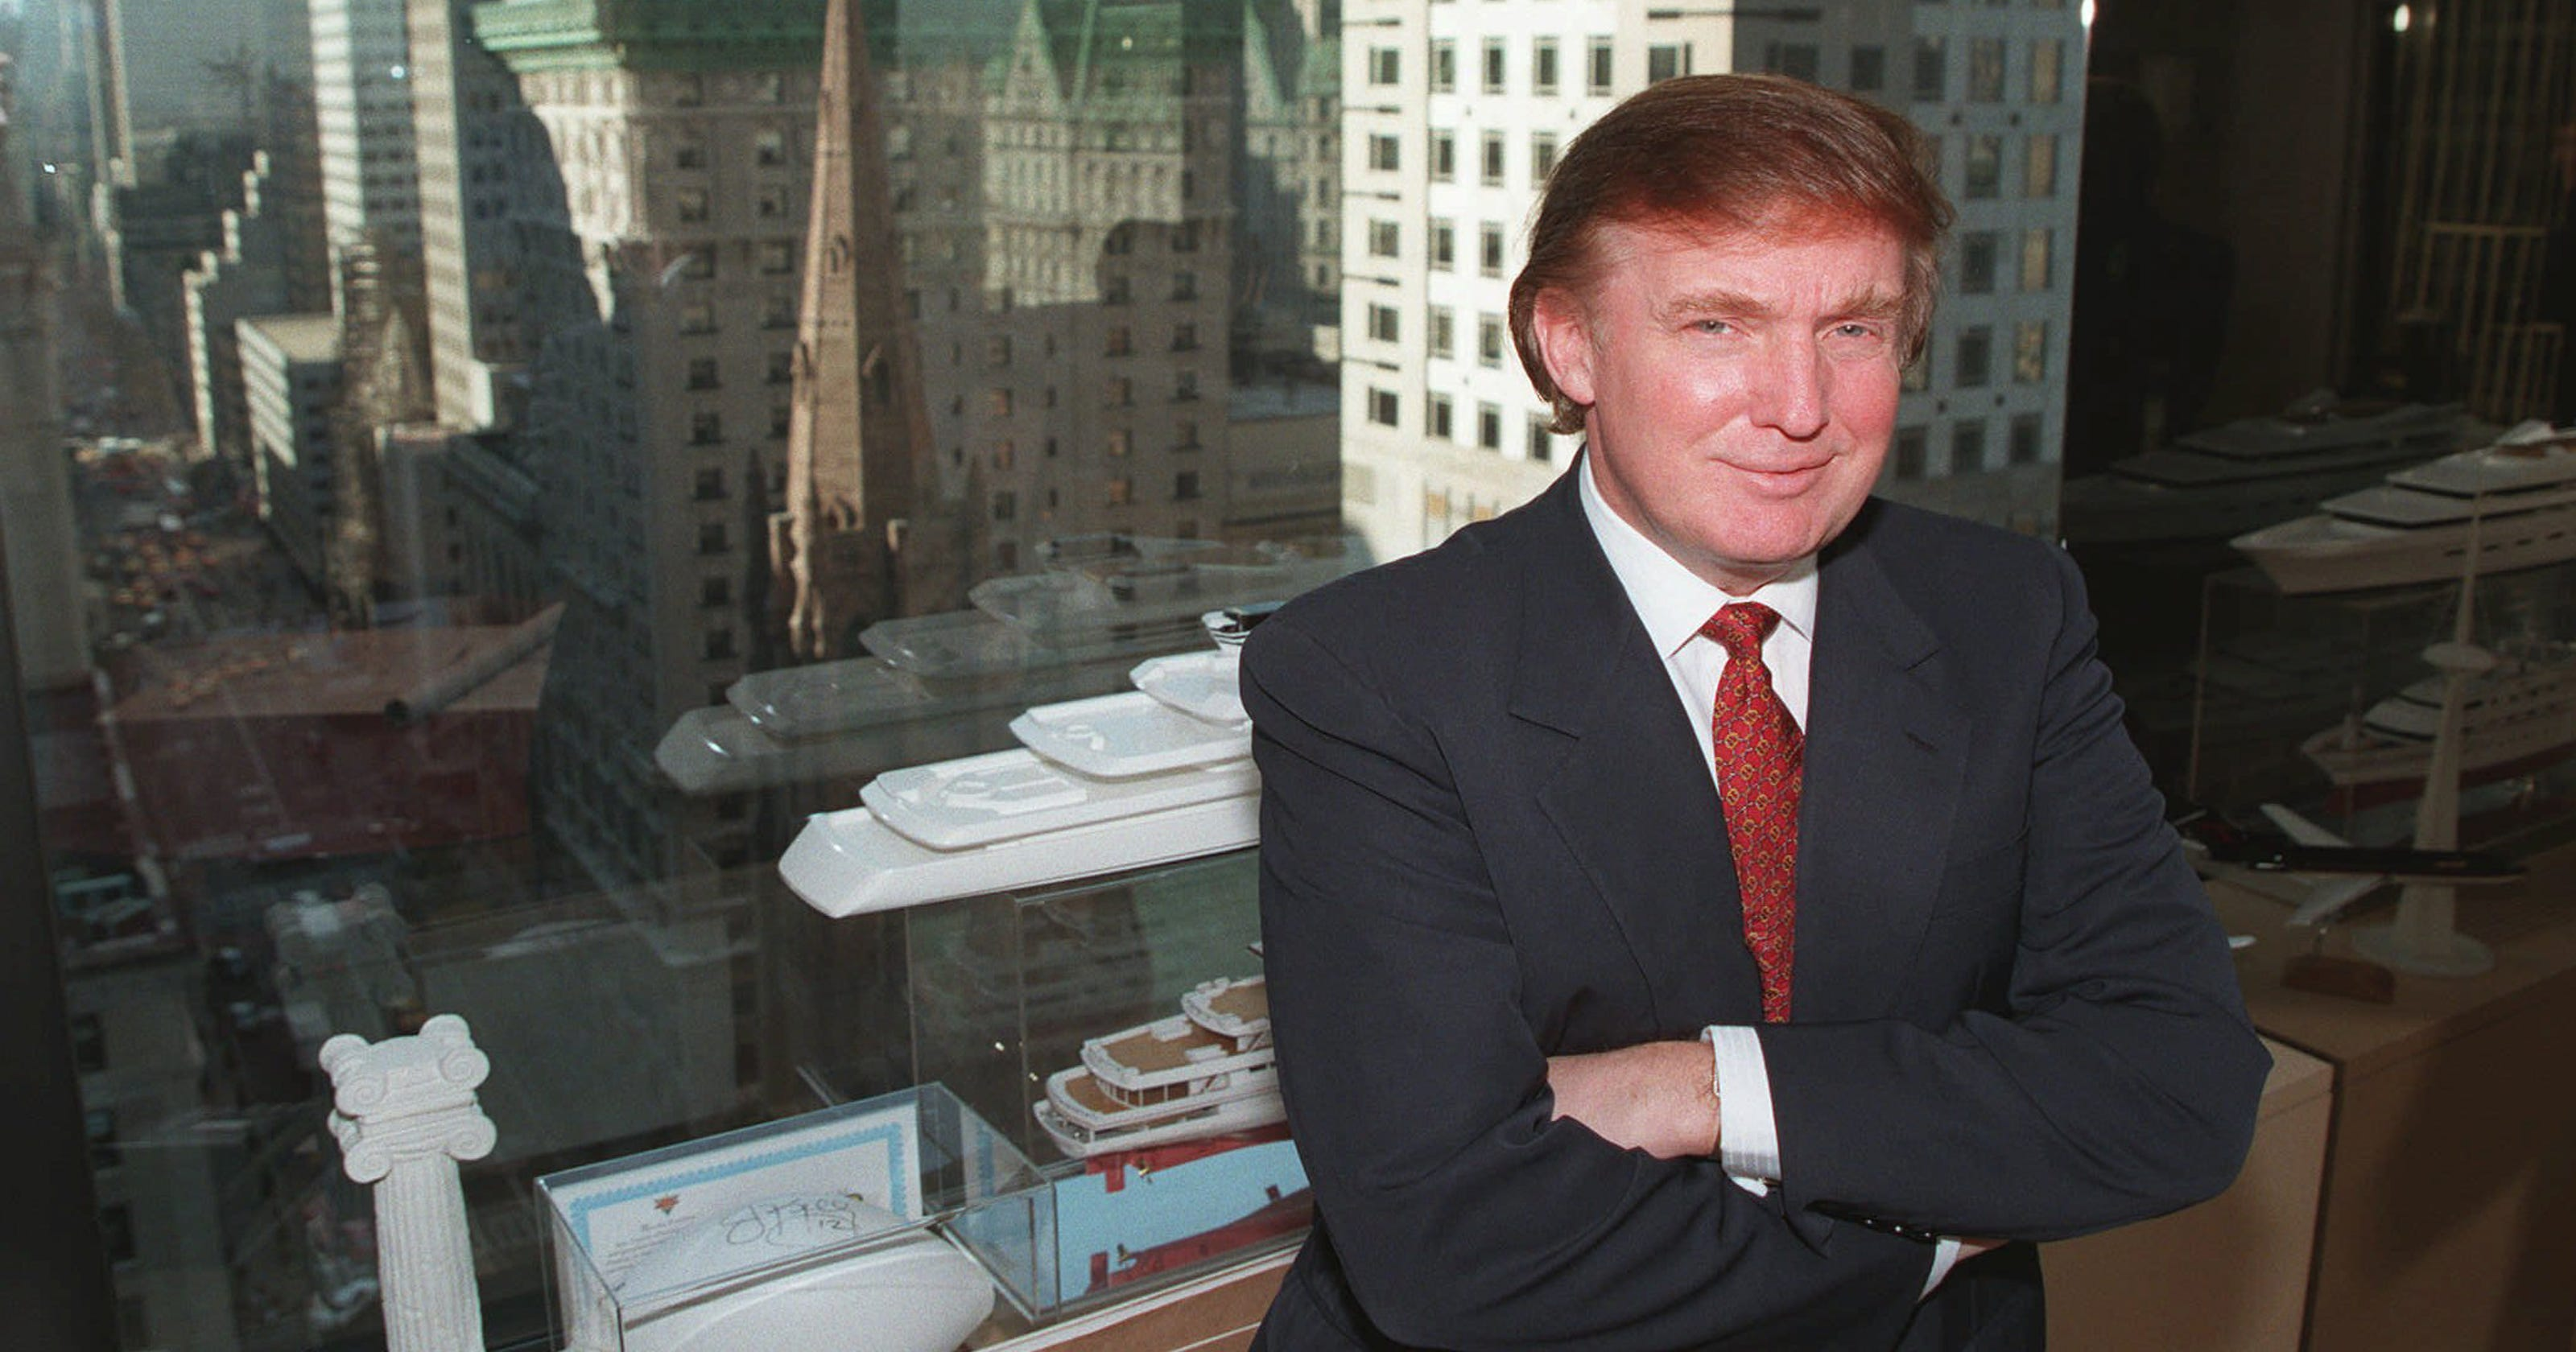 70 For 70 Memorable Donald Trump Quotes On His Big Birthday